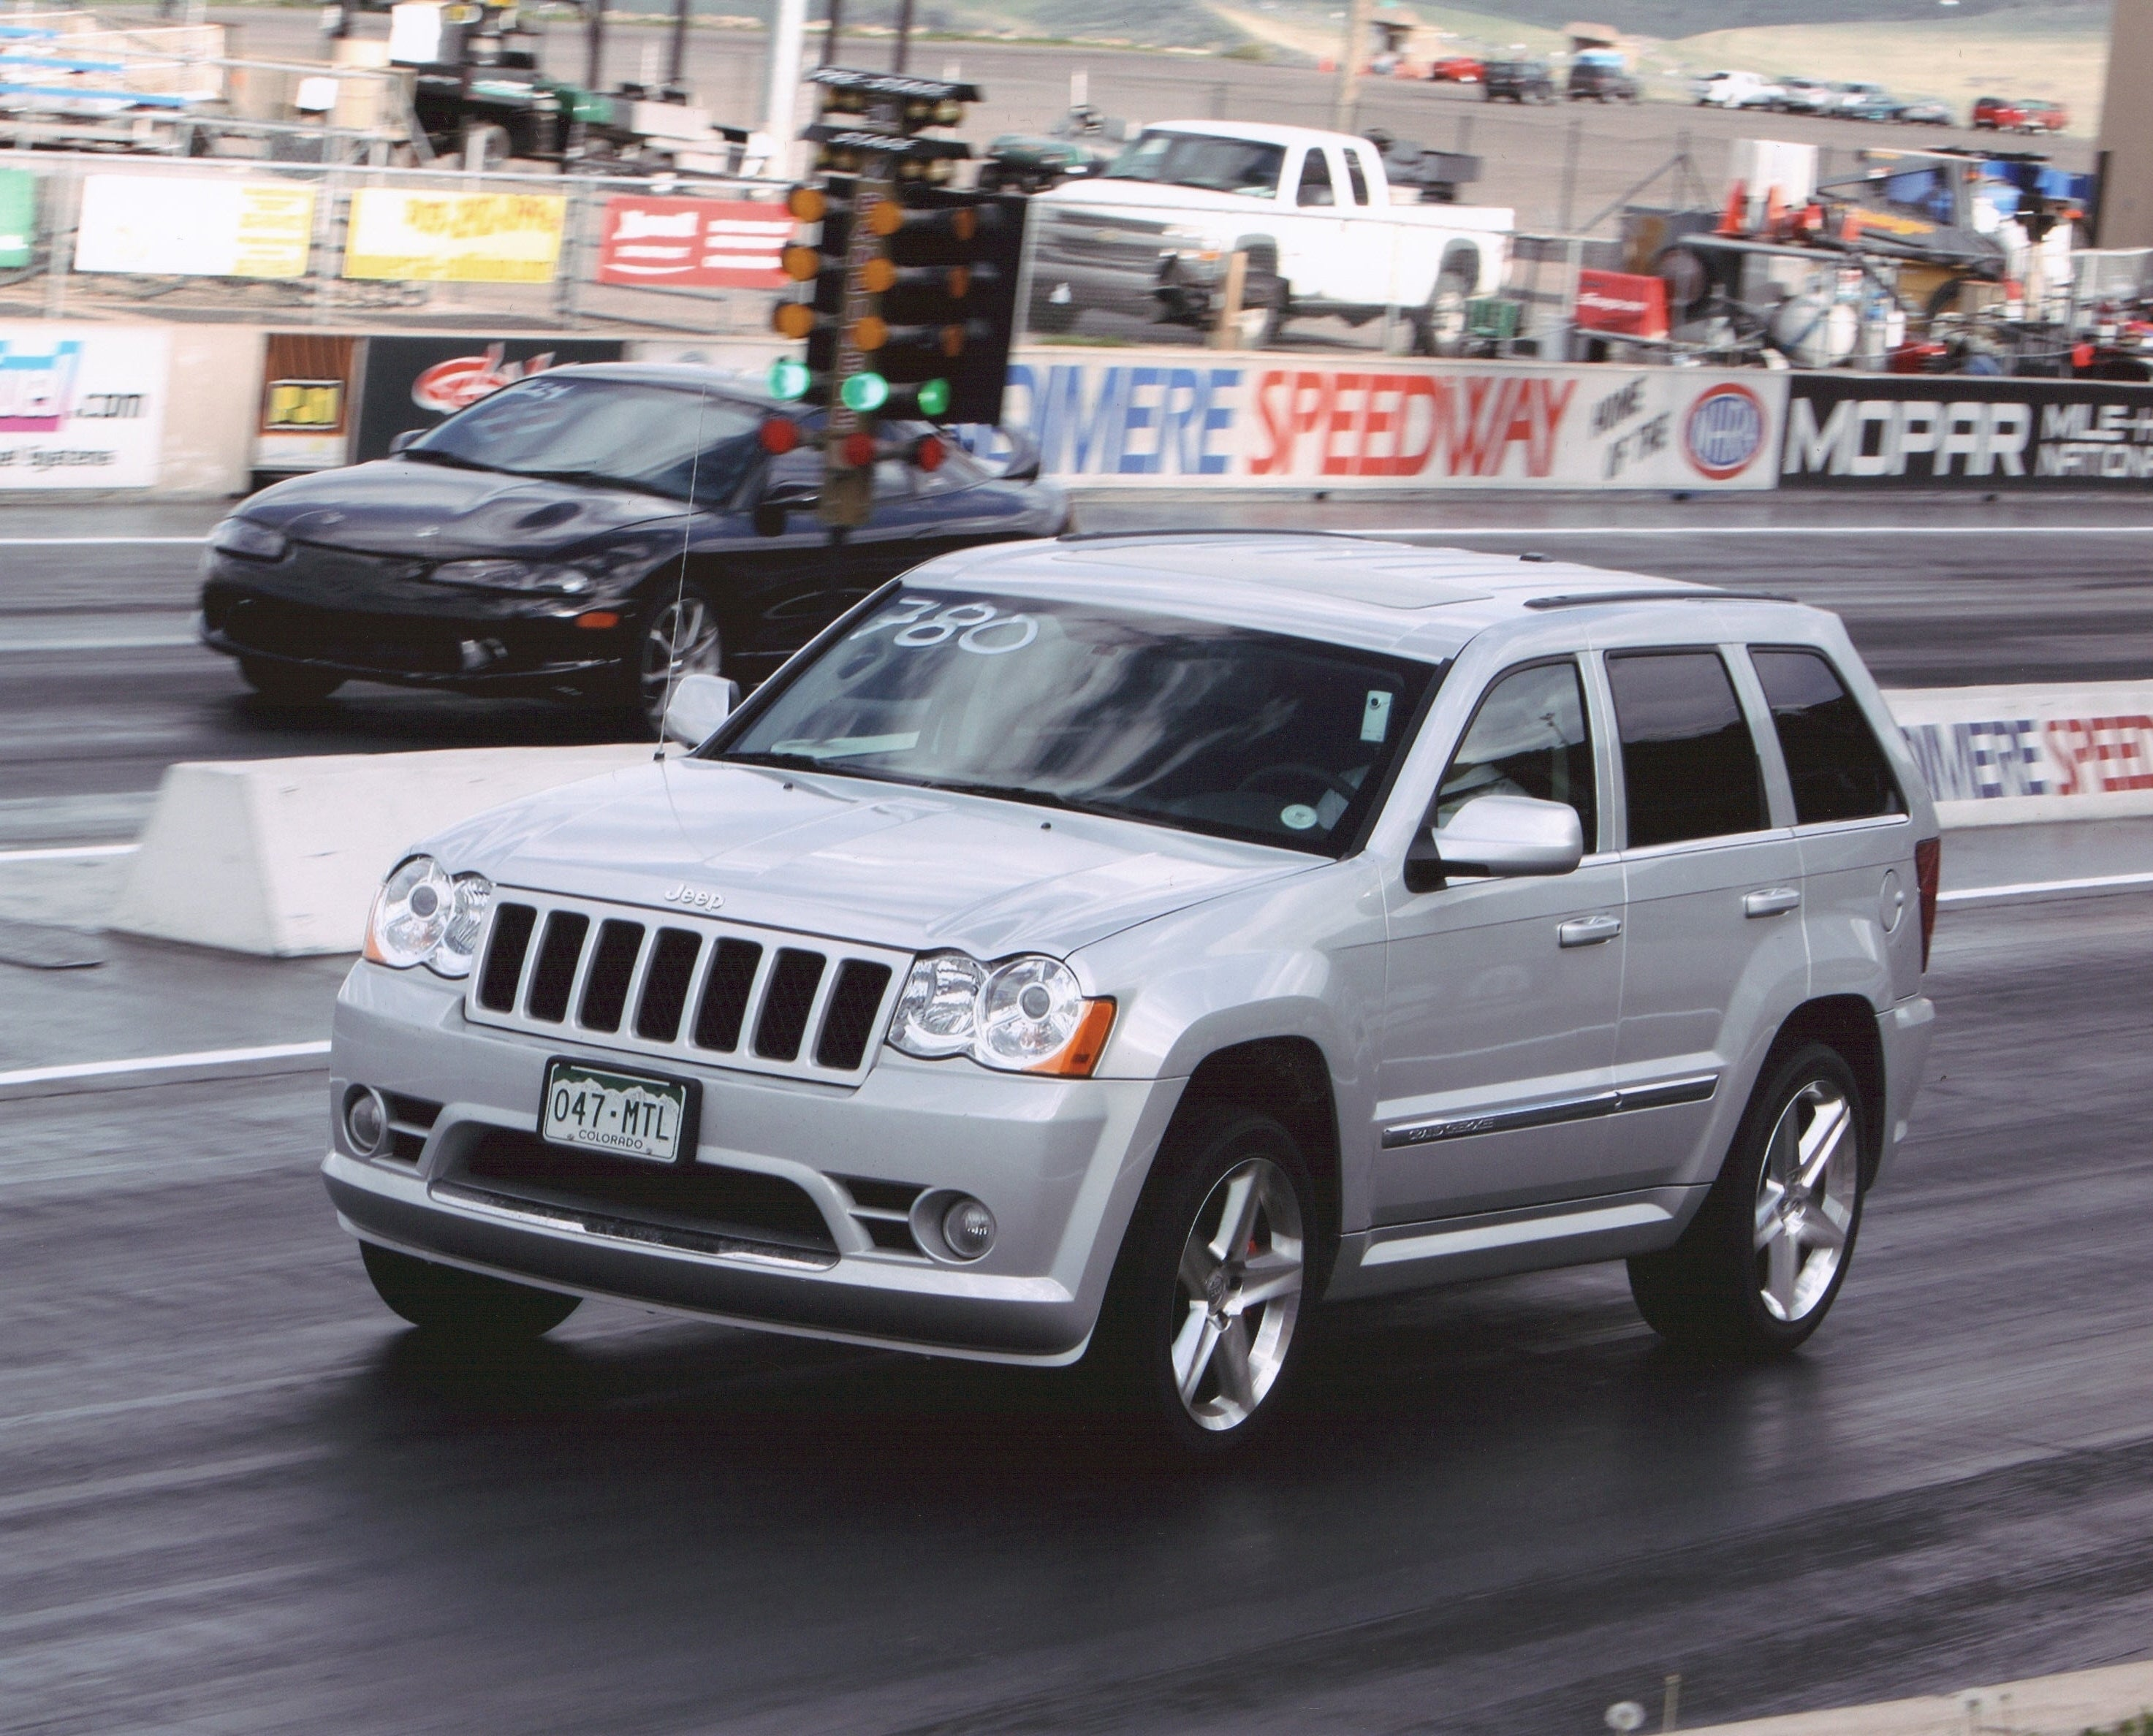 Wink's Vortech Supercharged SRT8 Jeep by R.M.C.R. Performance